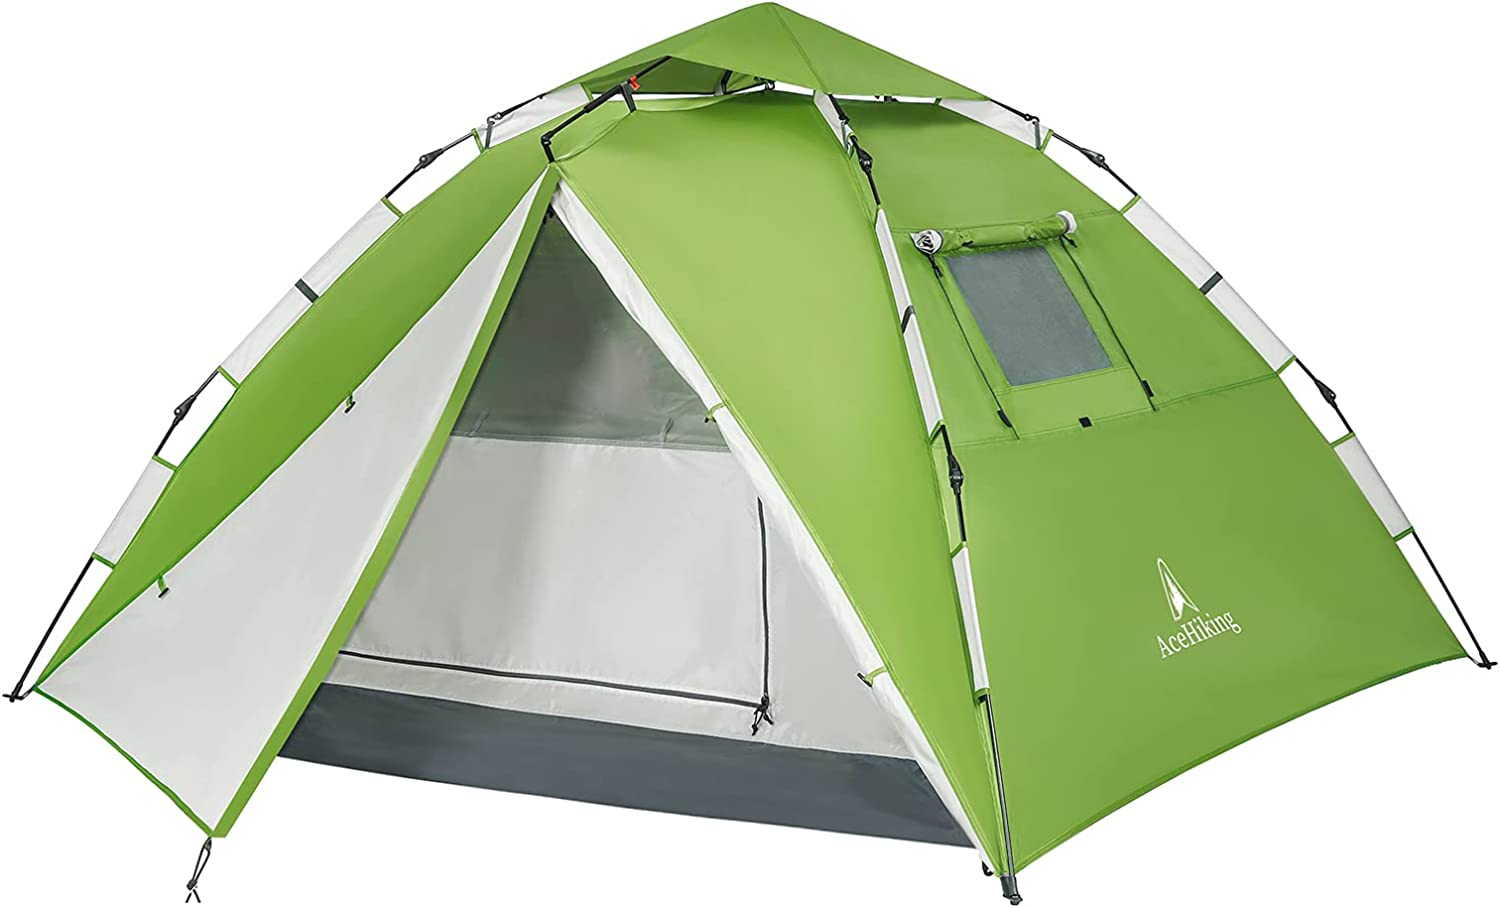 AceHiking 5 ☆ popular Instant Pop Up All items free shipping Family Portable 3-4 Person Camping Tent